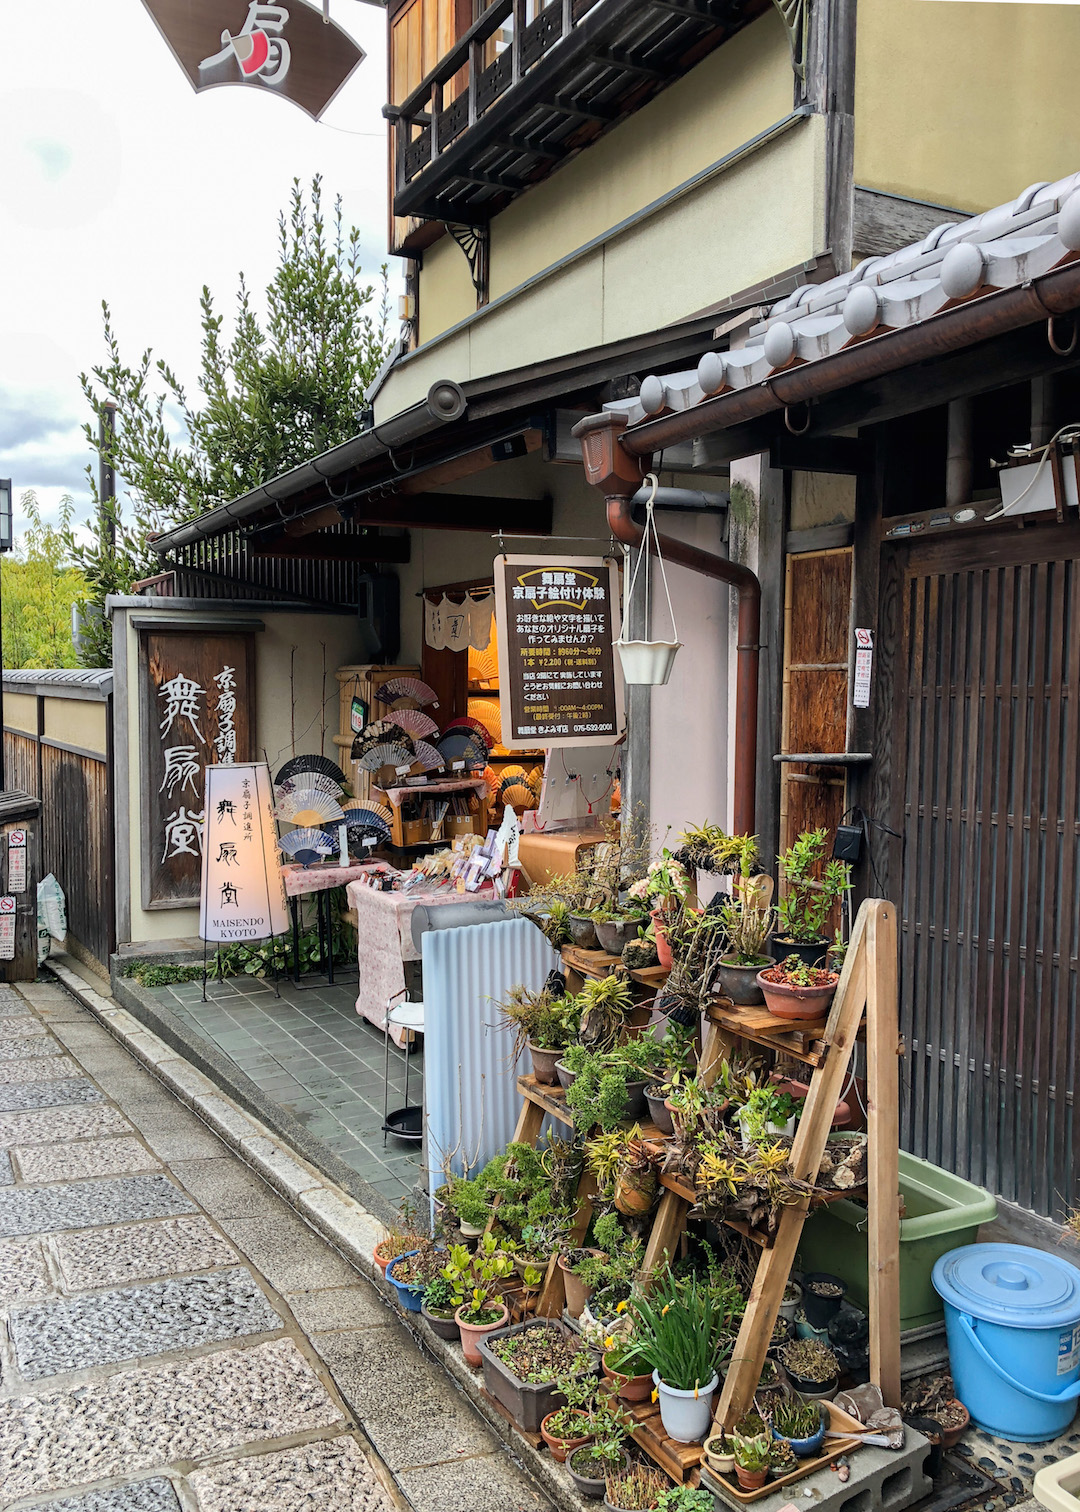 Her_Travel_Edit_Kyoto_Old_Town